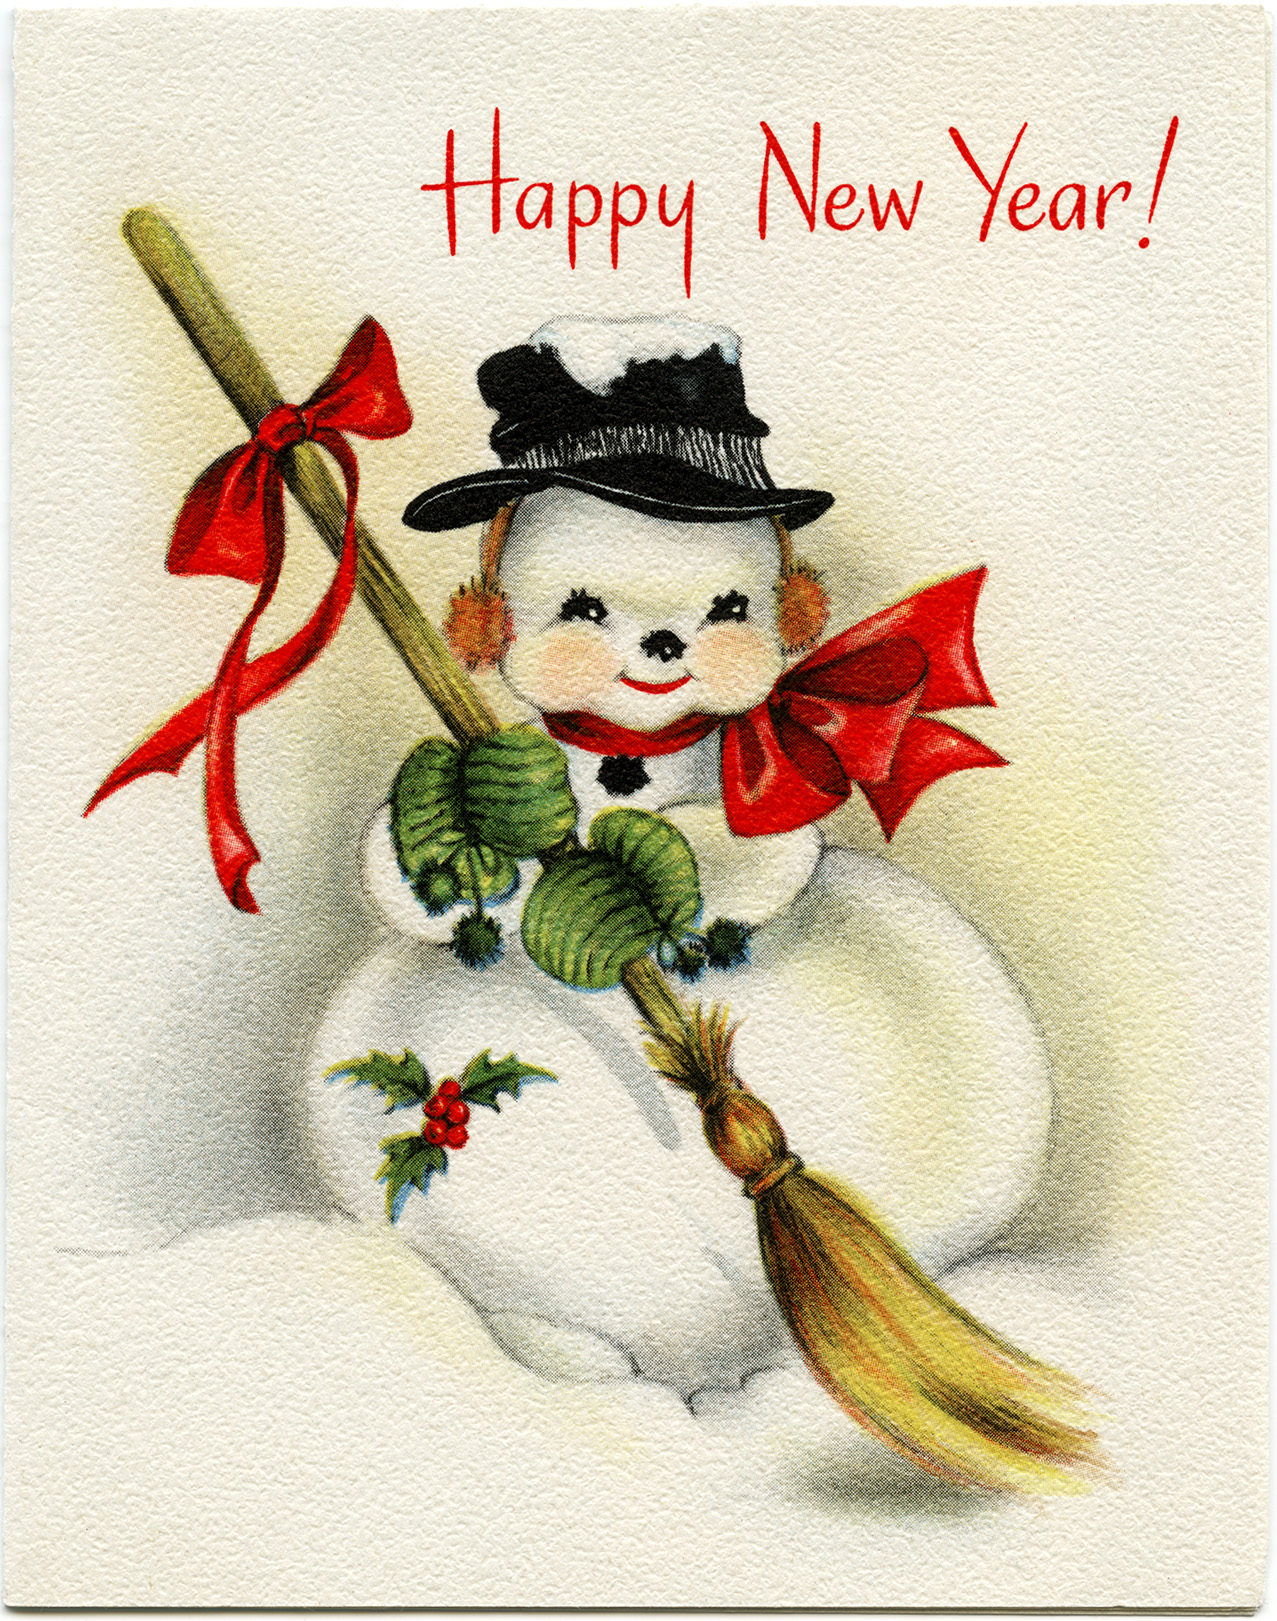 Vintage snowman new year greeting card old design shop